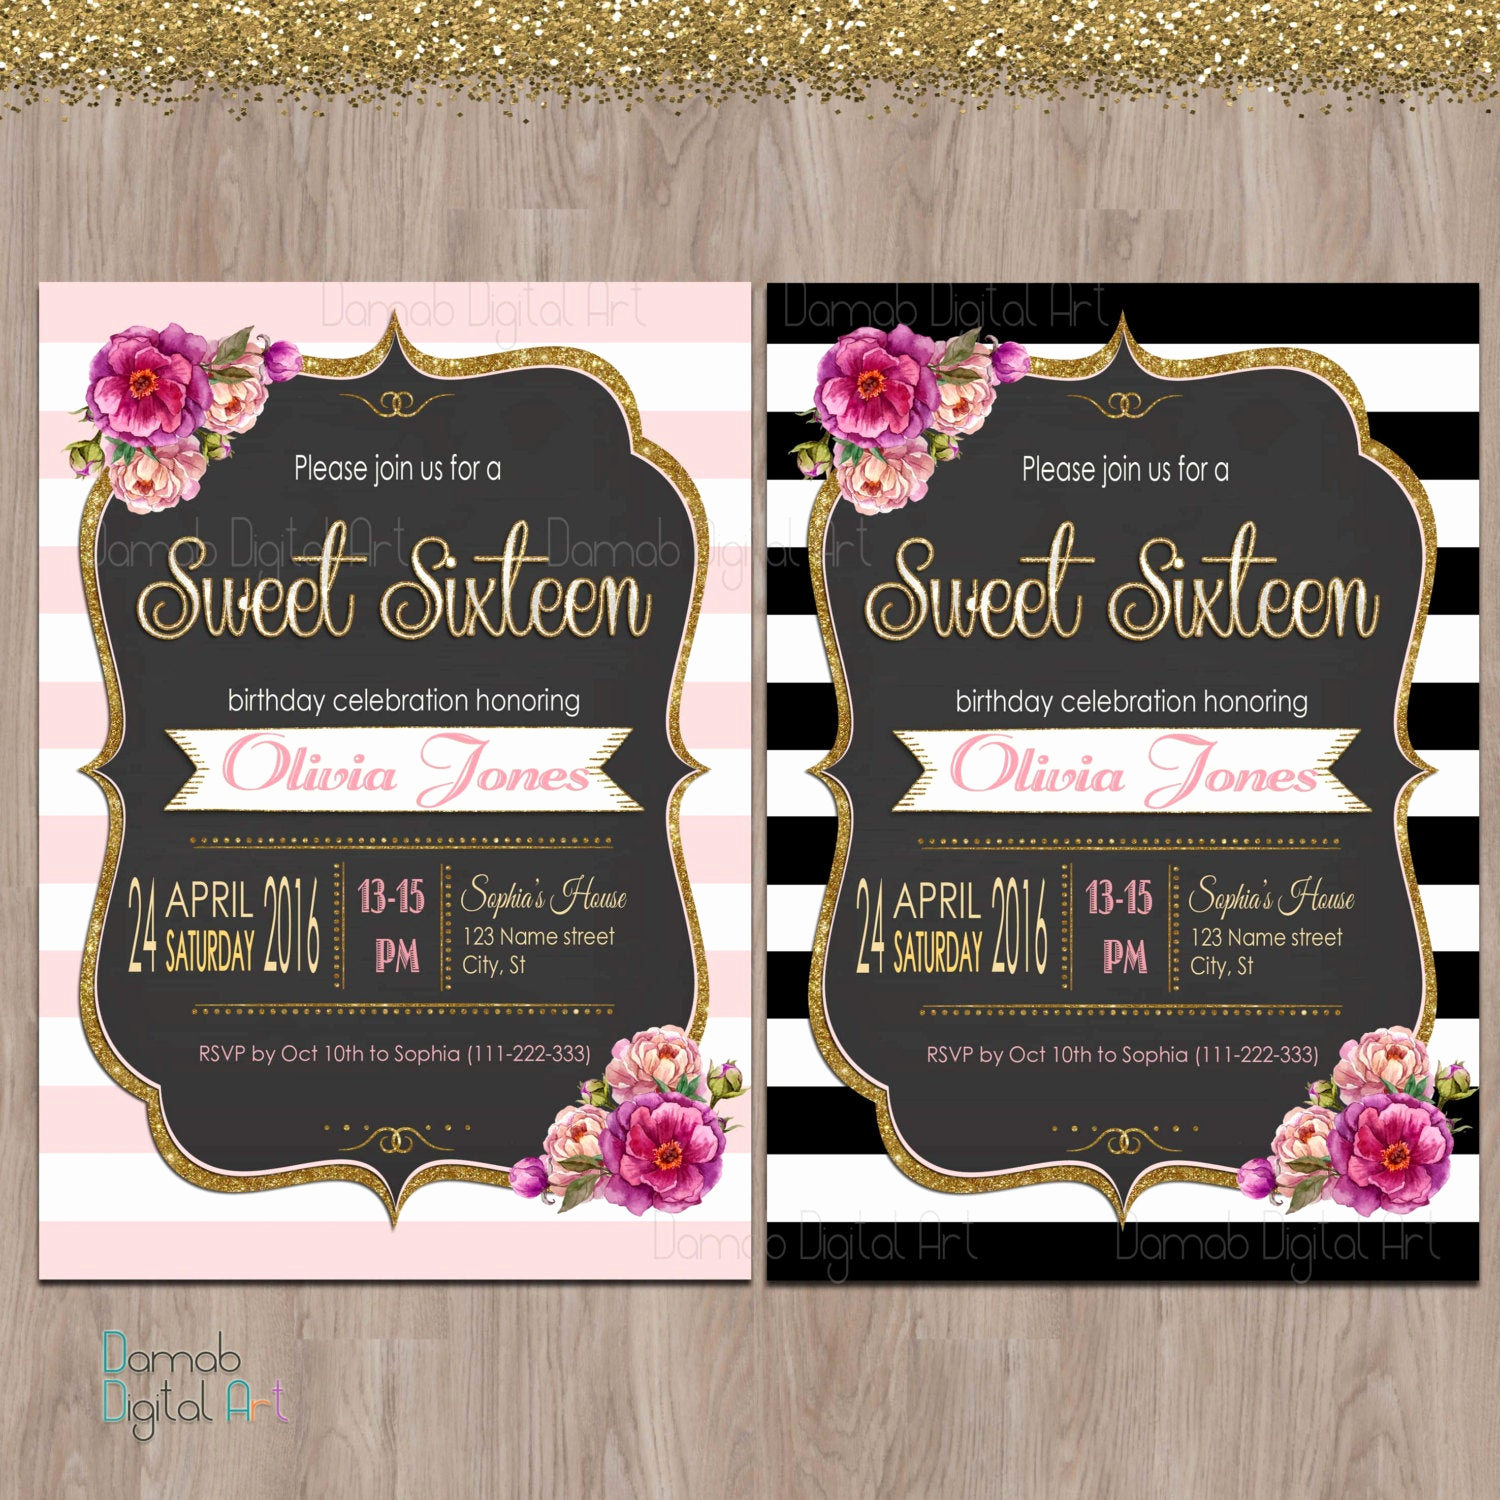 Sweet Sixteen Invitation Template Awesome Sweet 16 Invitation Sweet Sixteen Invitations Sweet 16